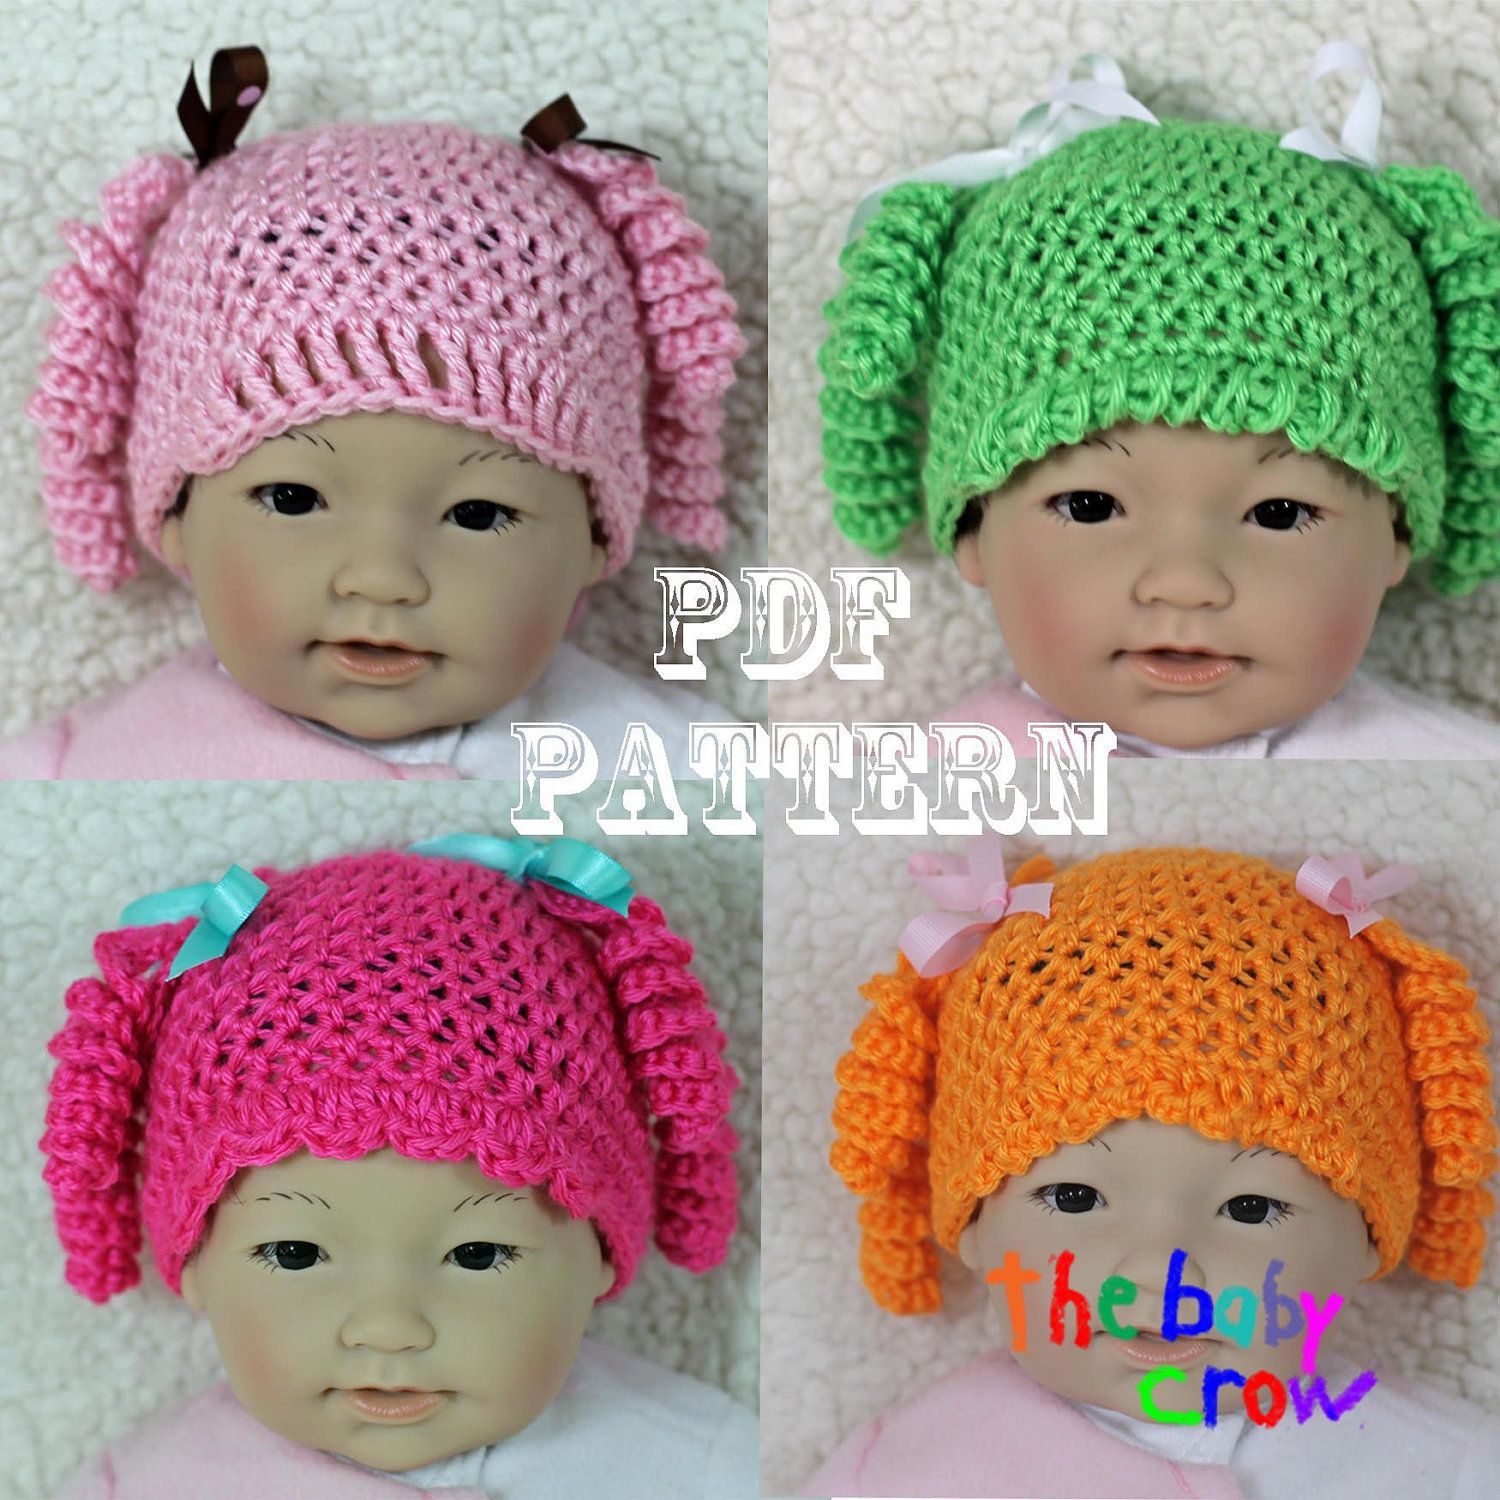 Crochet baby hat pattern cute girls character hat by thebabycrow crochet baby hat pattern cute girls character hat by thebabycrow bankloansurffo Image collections